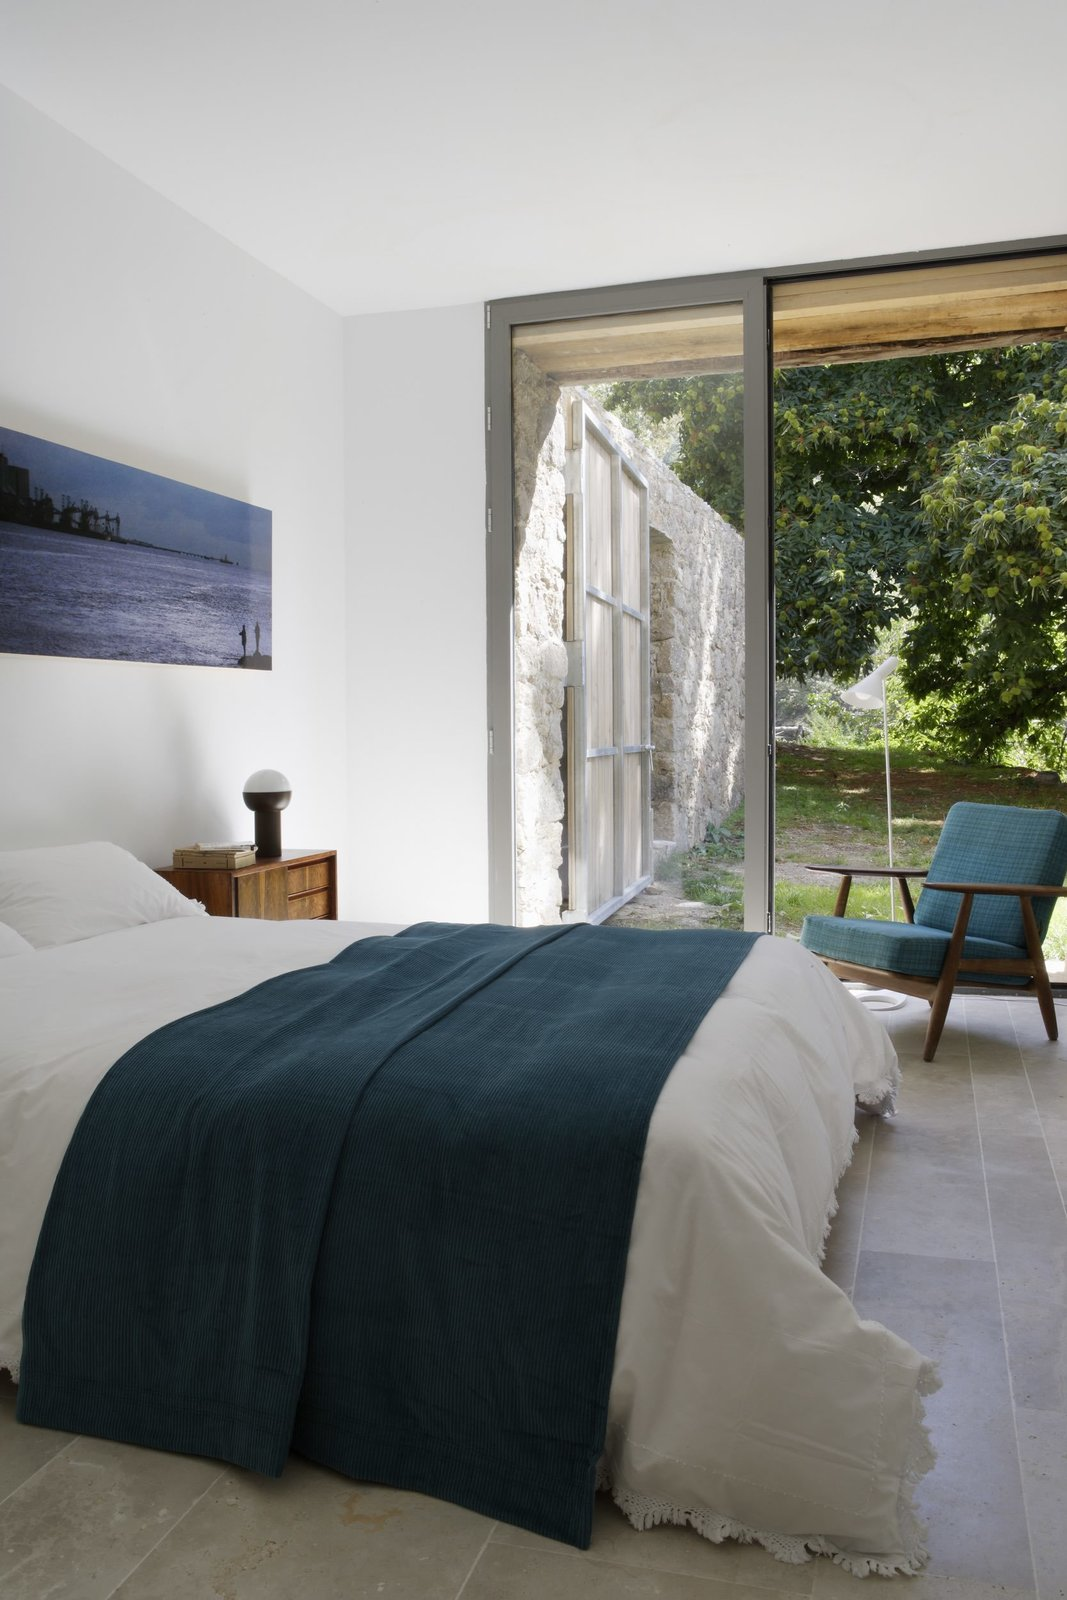 Bedroom, Bed, Chair, and Night Stands  Photo 13 of 14 in An Abandoned Stable in Spain Is Transformed Into a Sustainable Vacation Home For Rent